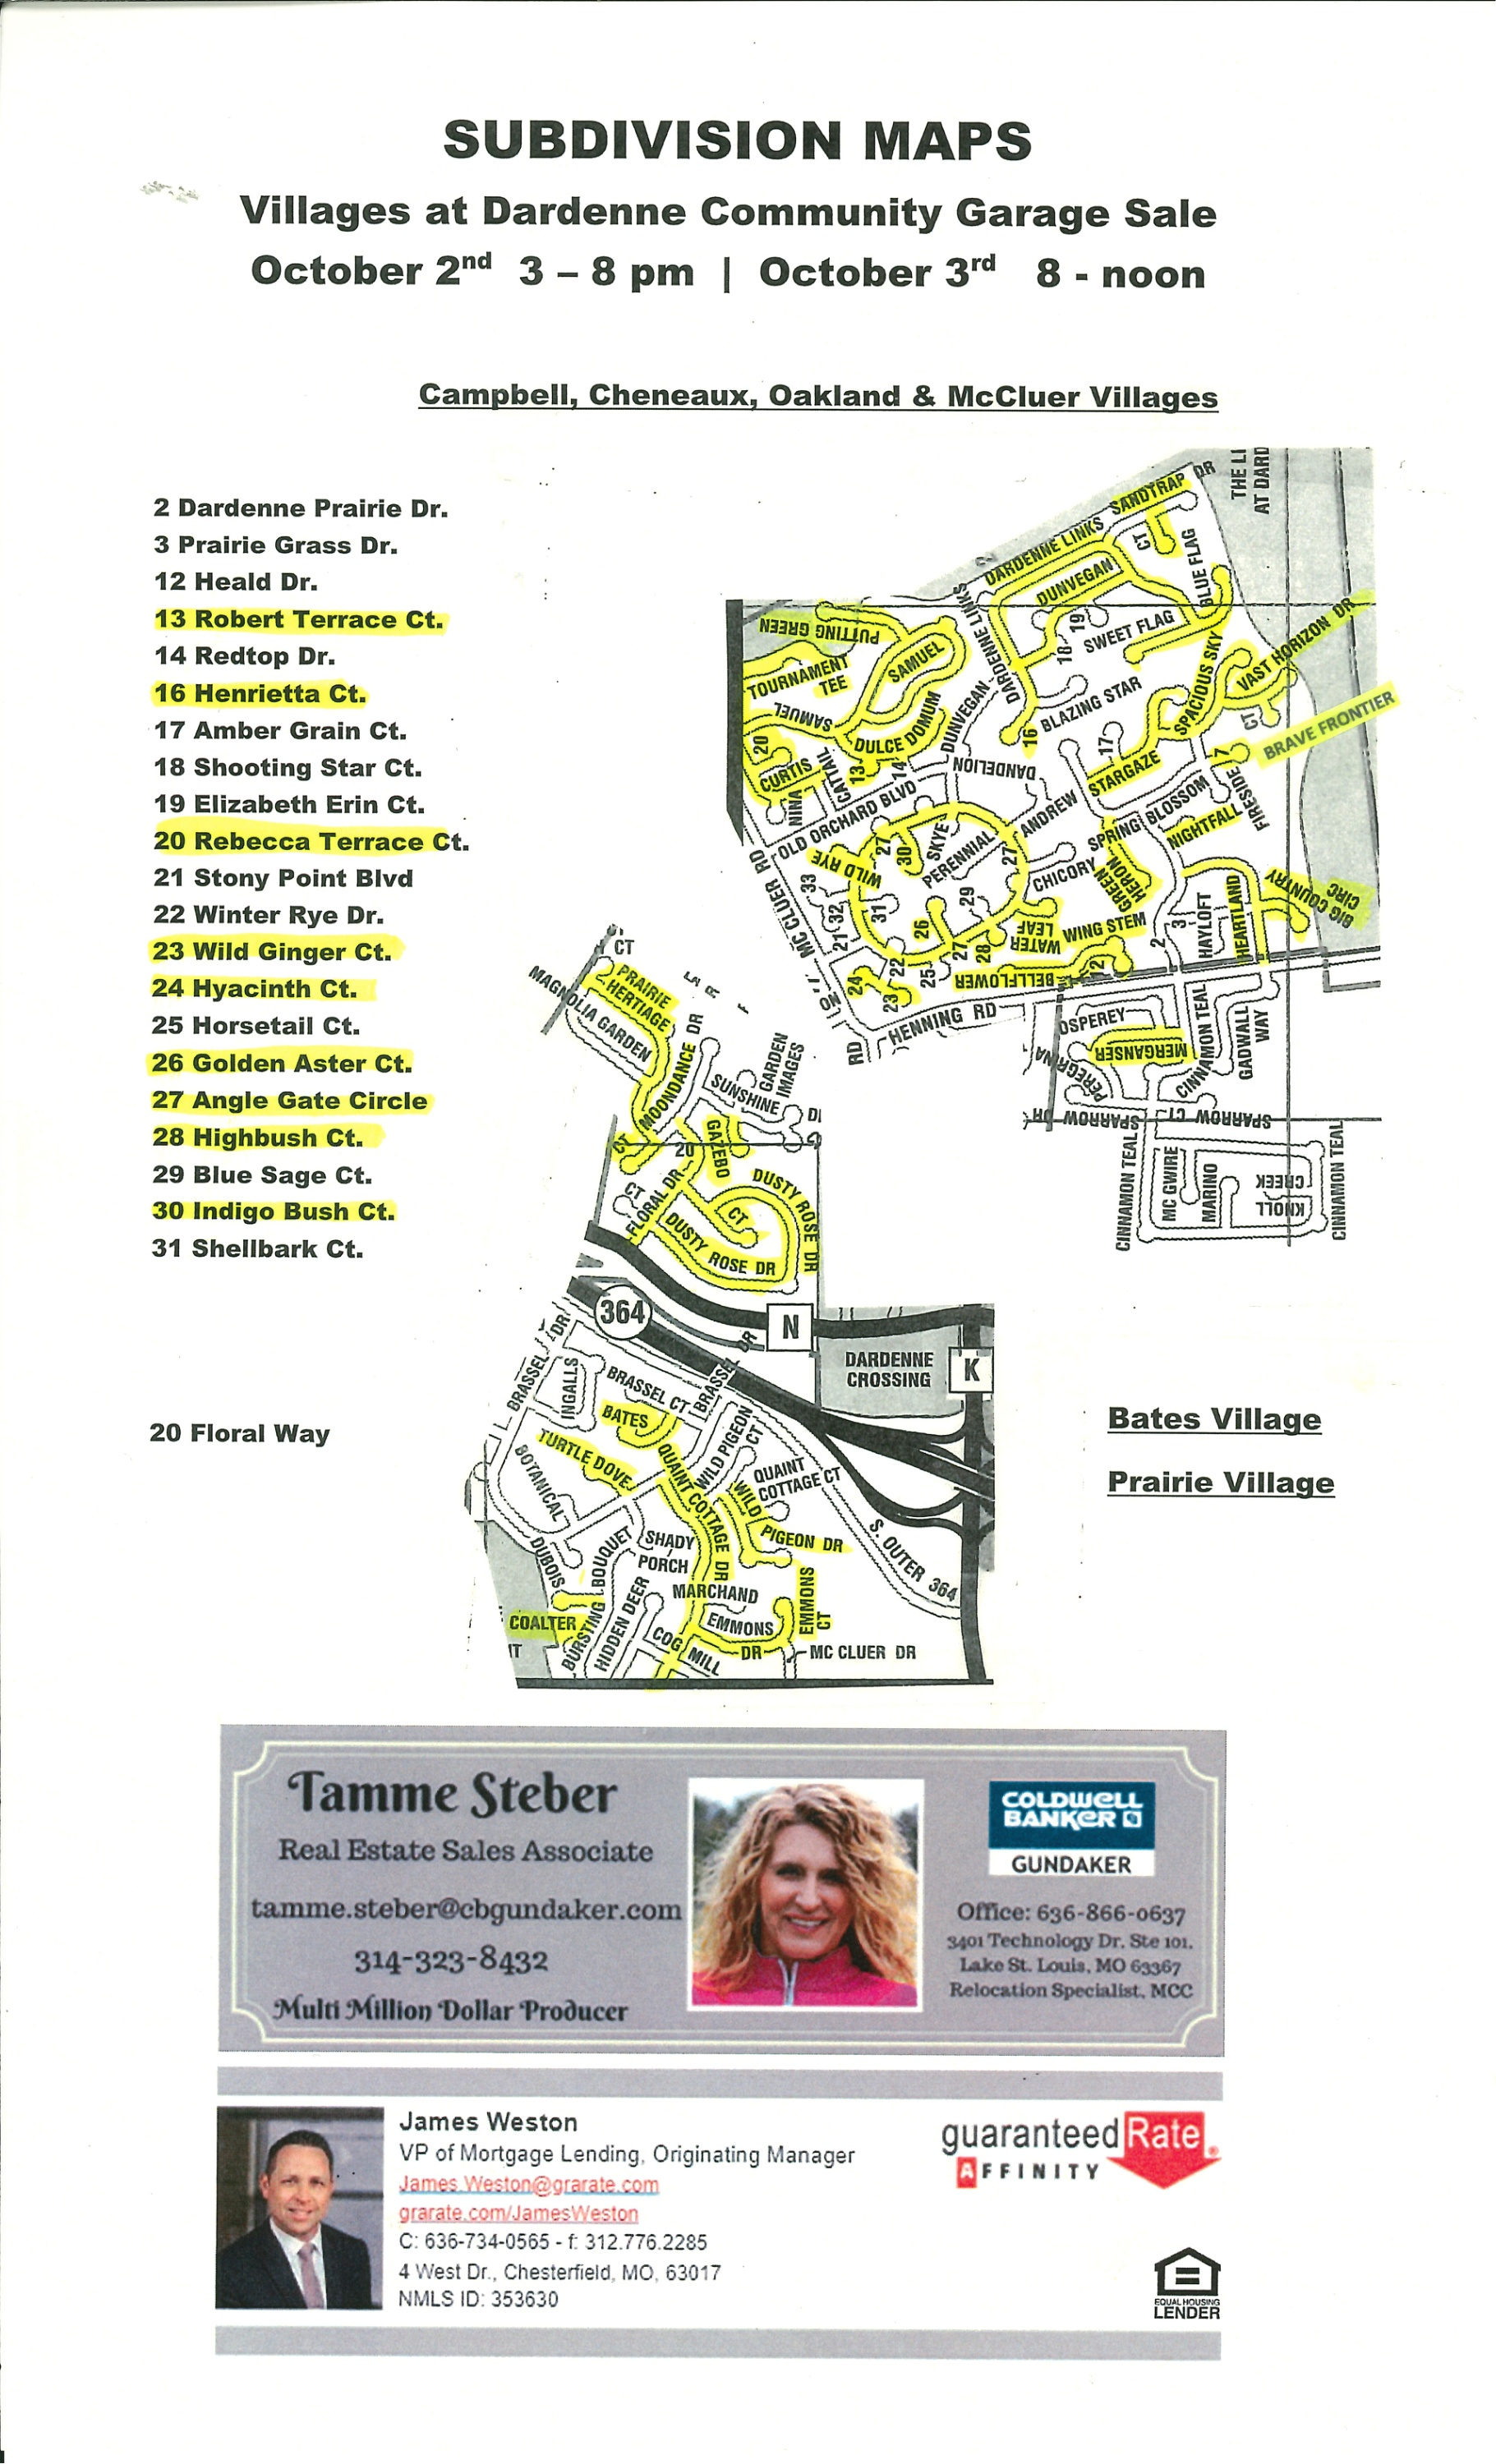 Villages At Dardenne Subdivision Garage Sale Participating Homes Map 2020